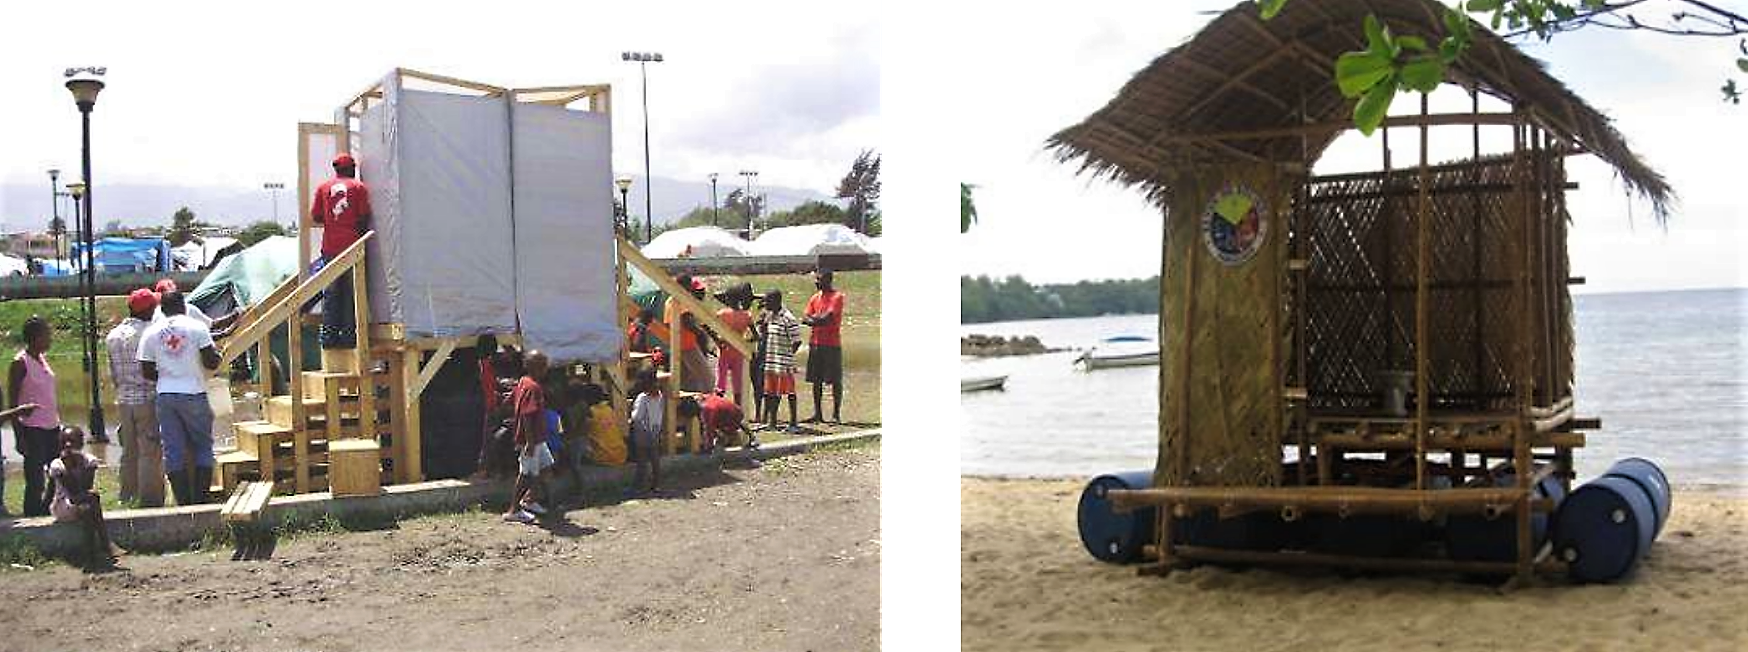 Raised latrine kit with container tanks as constructed by IFRC in the Haiti Earthquake response in 2010 (left) and a Floating Sanitary Toilet (FST) as introduced in Bolinao, Philippines (right). Source: IFRC (2011, left image) and PEN (2010, right image)